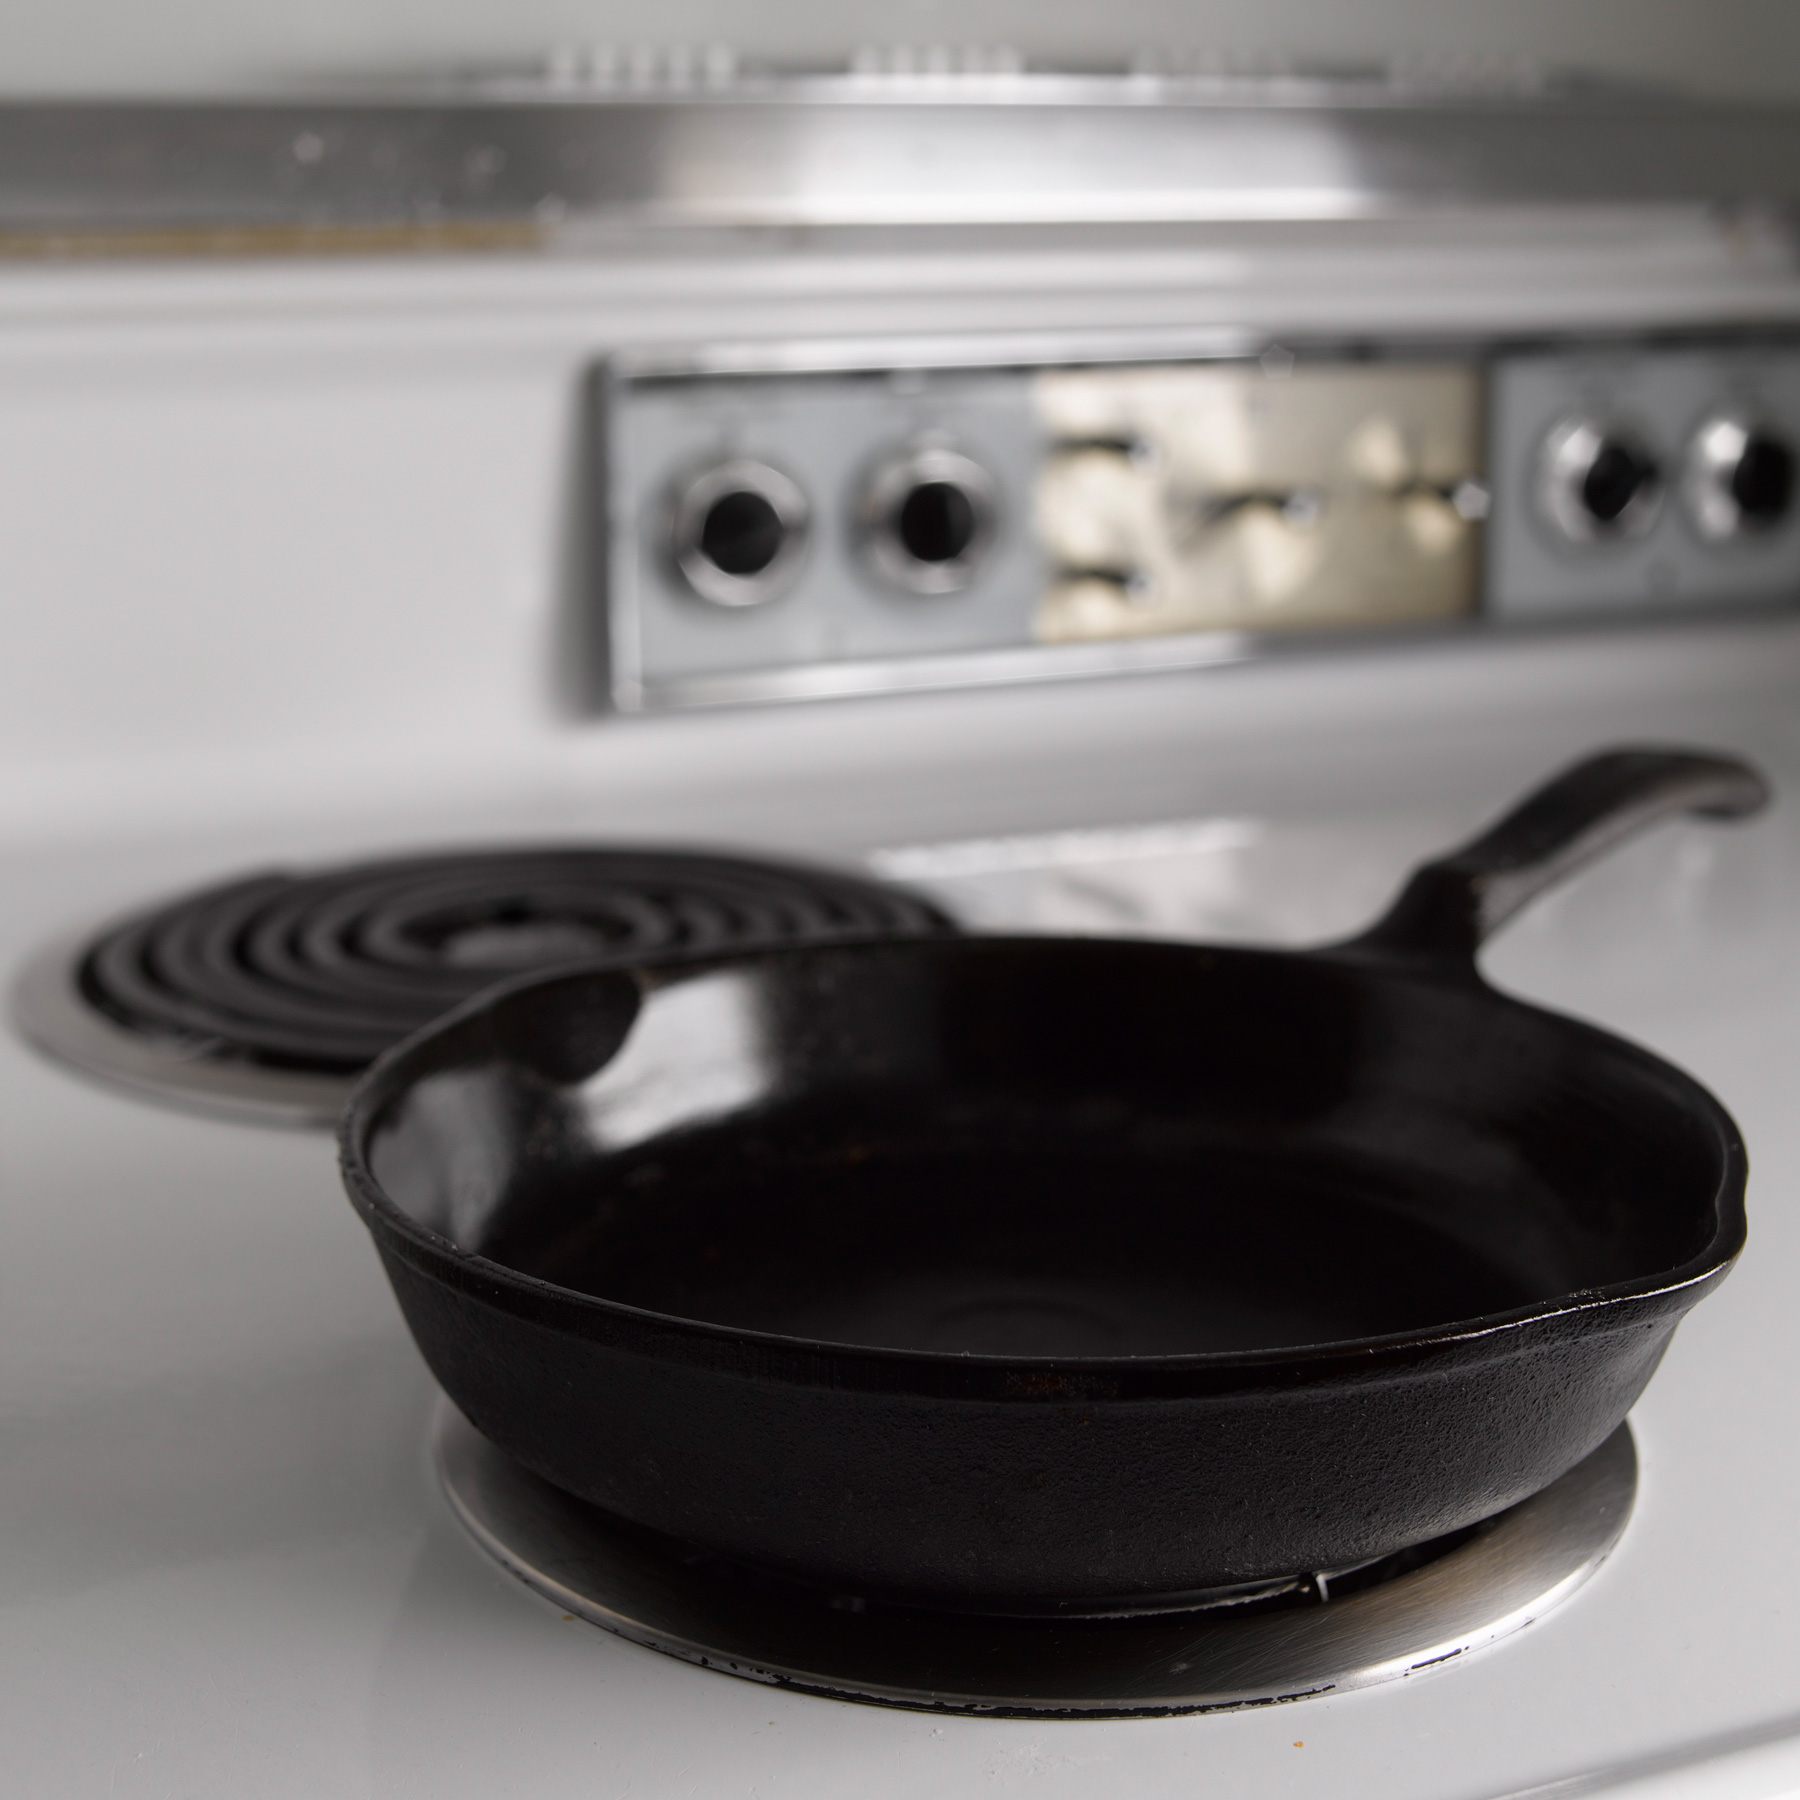 10 Ways to Make Your Home Greener: cast iron cookware